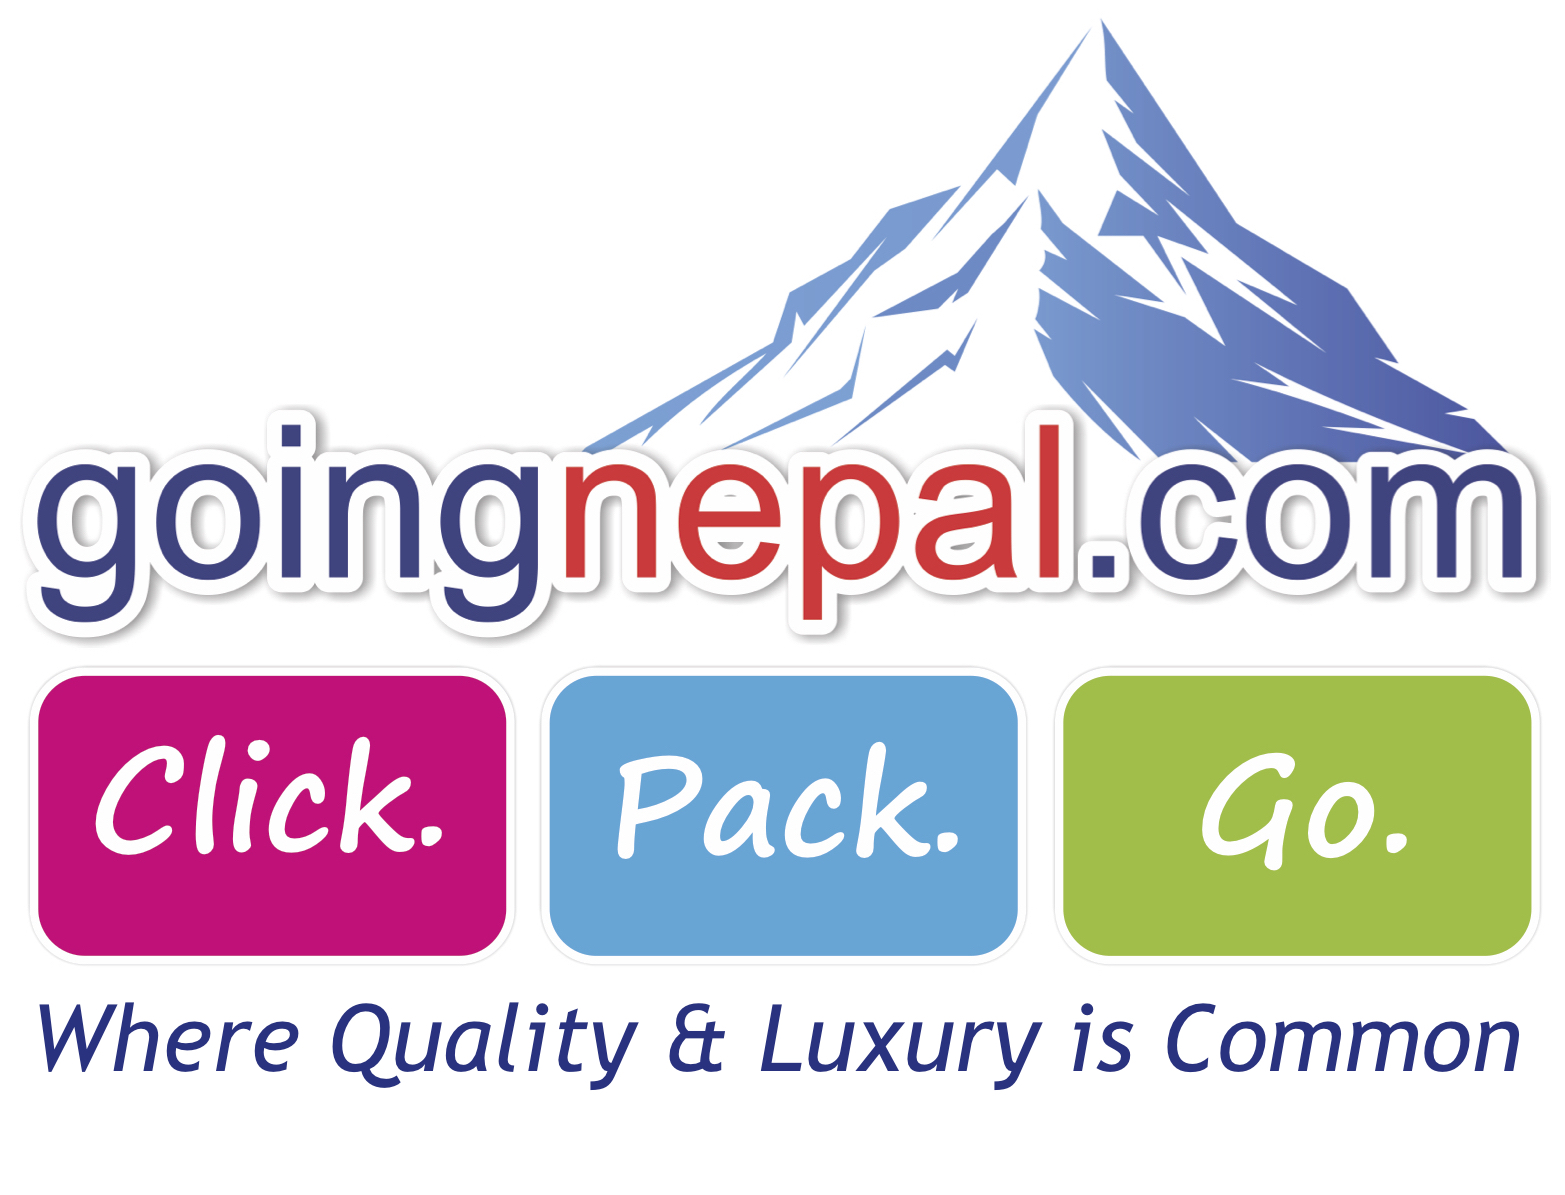 A Complete DMC and B2B for Nepal, Tibet and Bhutan